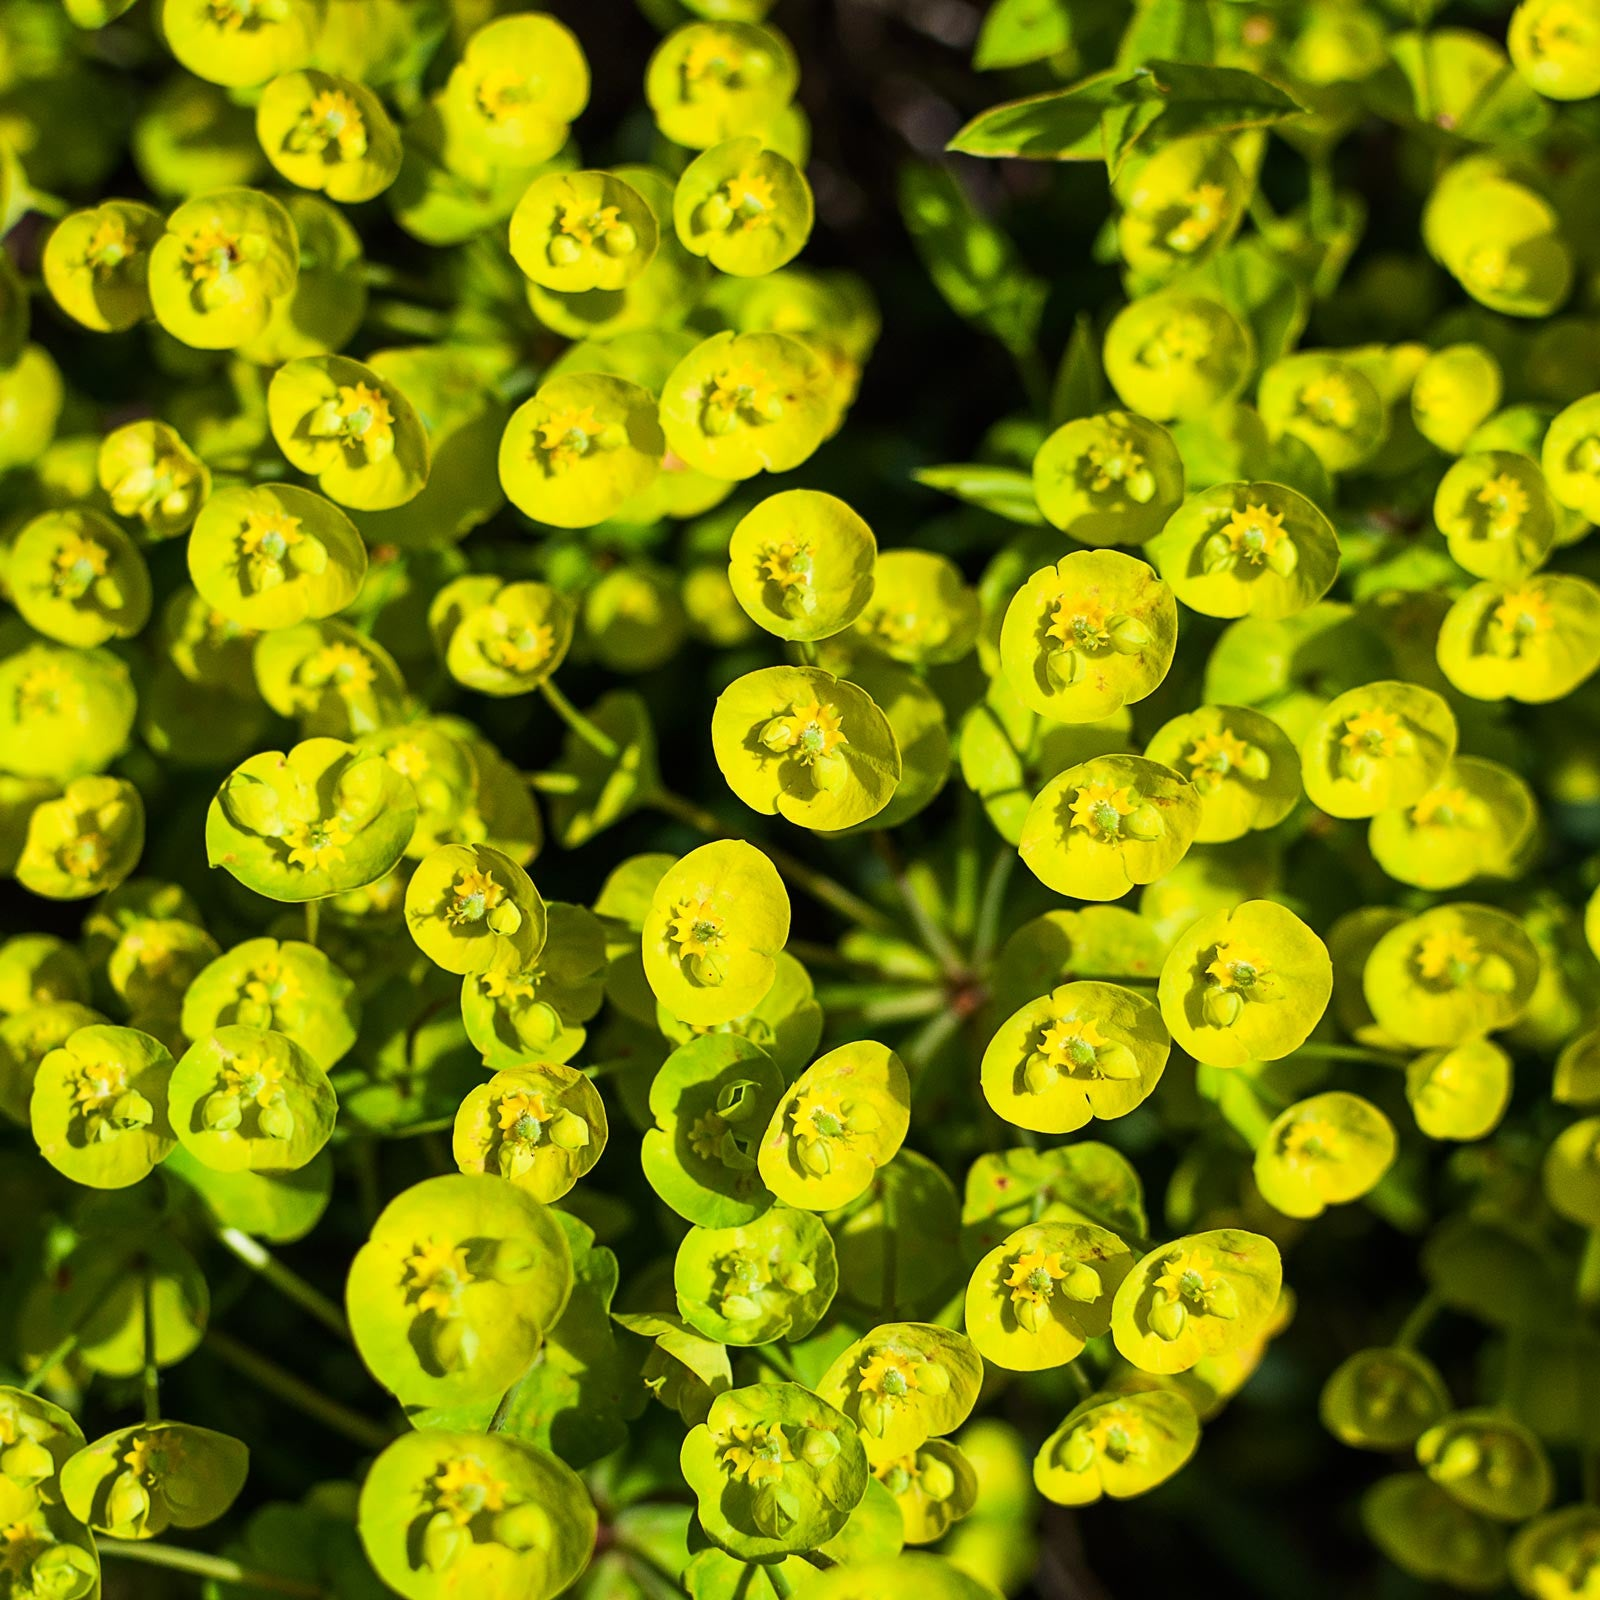 Euphorbia flowers radiant in the sun